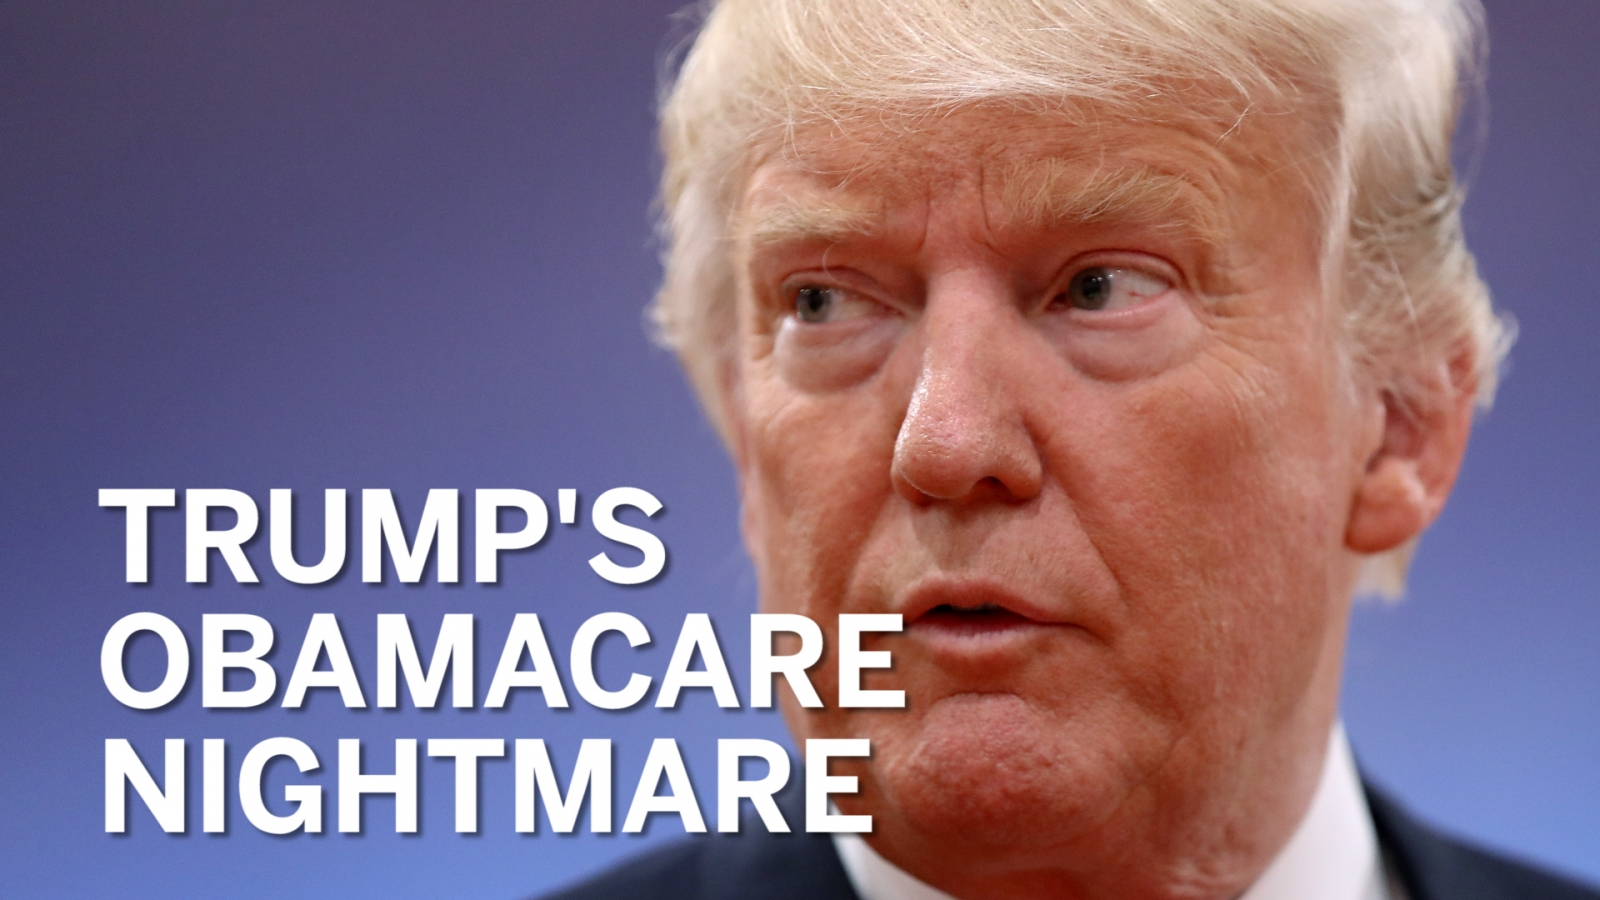 Watch Donald Trump slowly realise how difficult it is to repeal and replace Obamacare